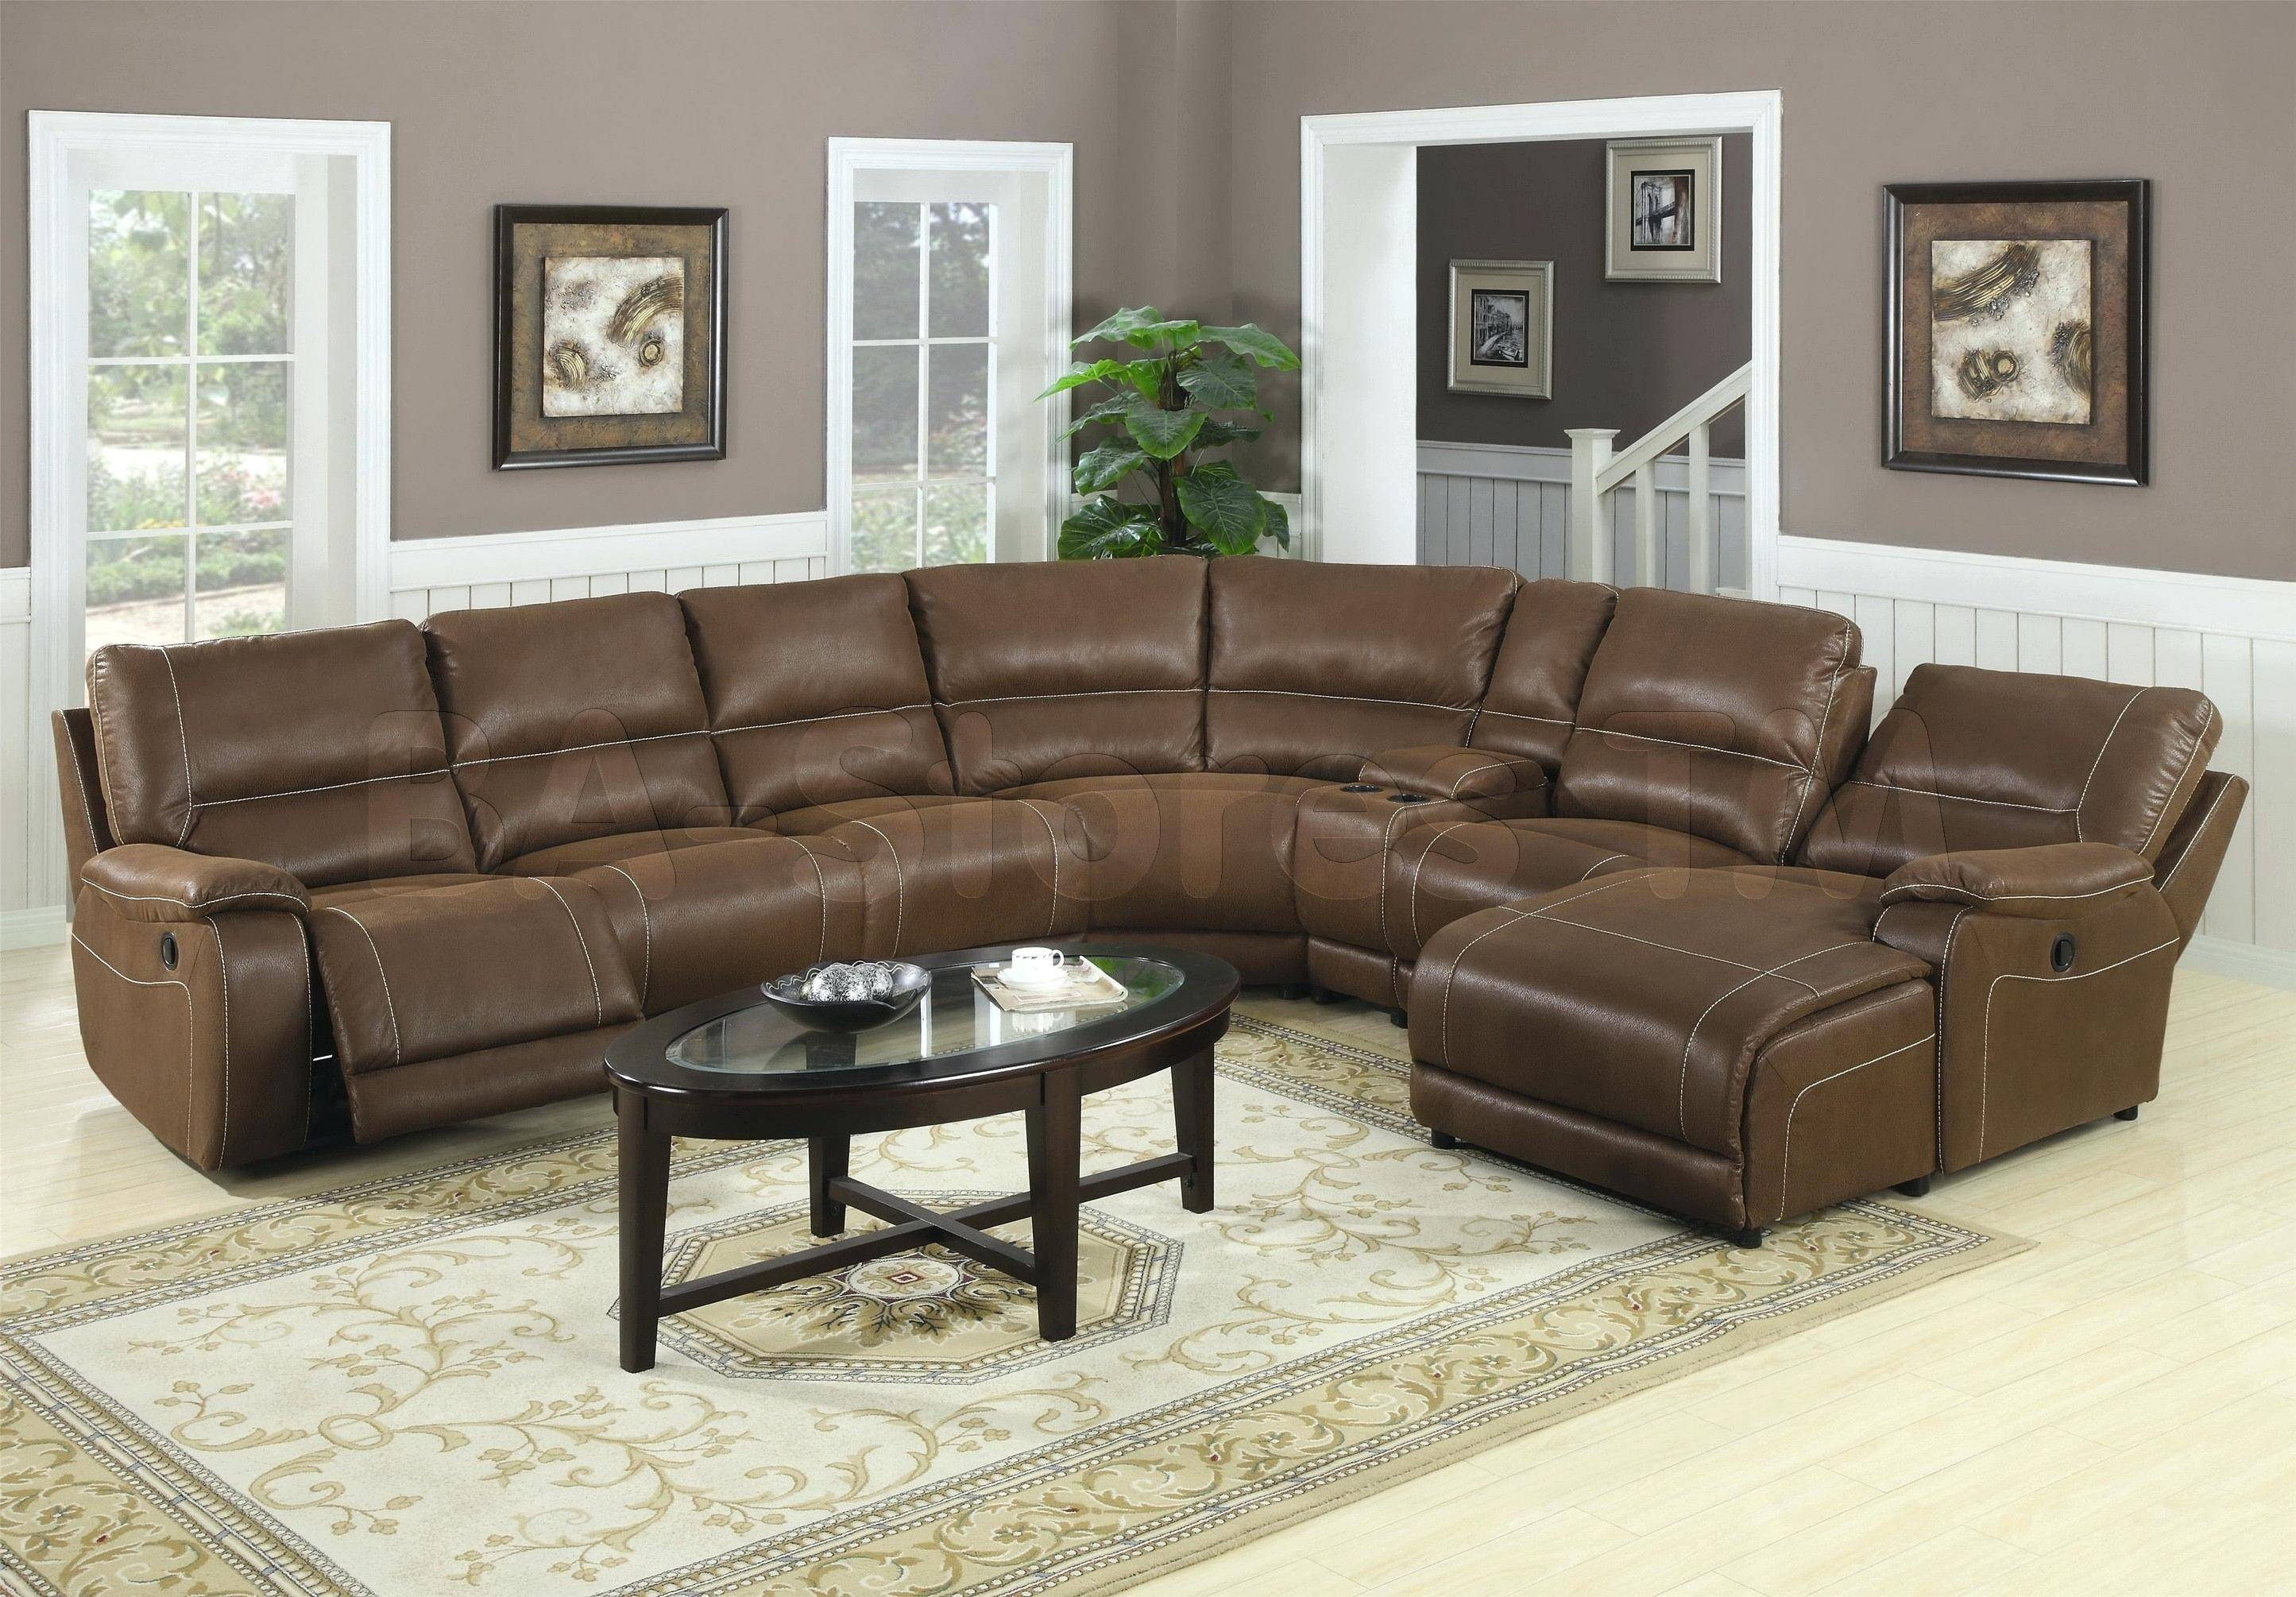 Two Seater Recliner Leather Sofa Furniture Amazing Reclining regarding 2 Seater Recliner Leather Sofas (Image 30 of 30)